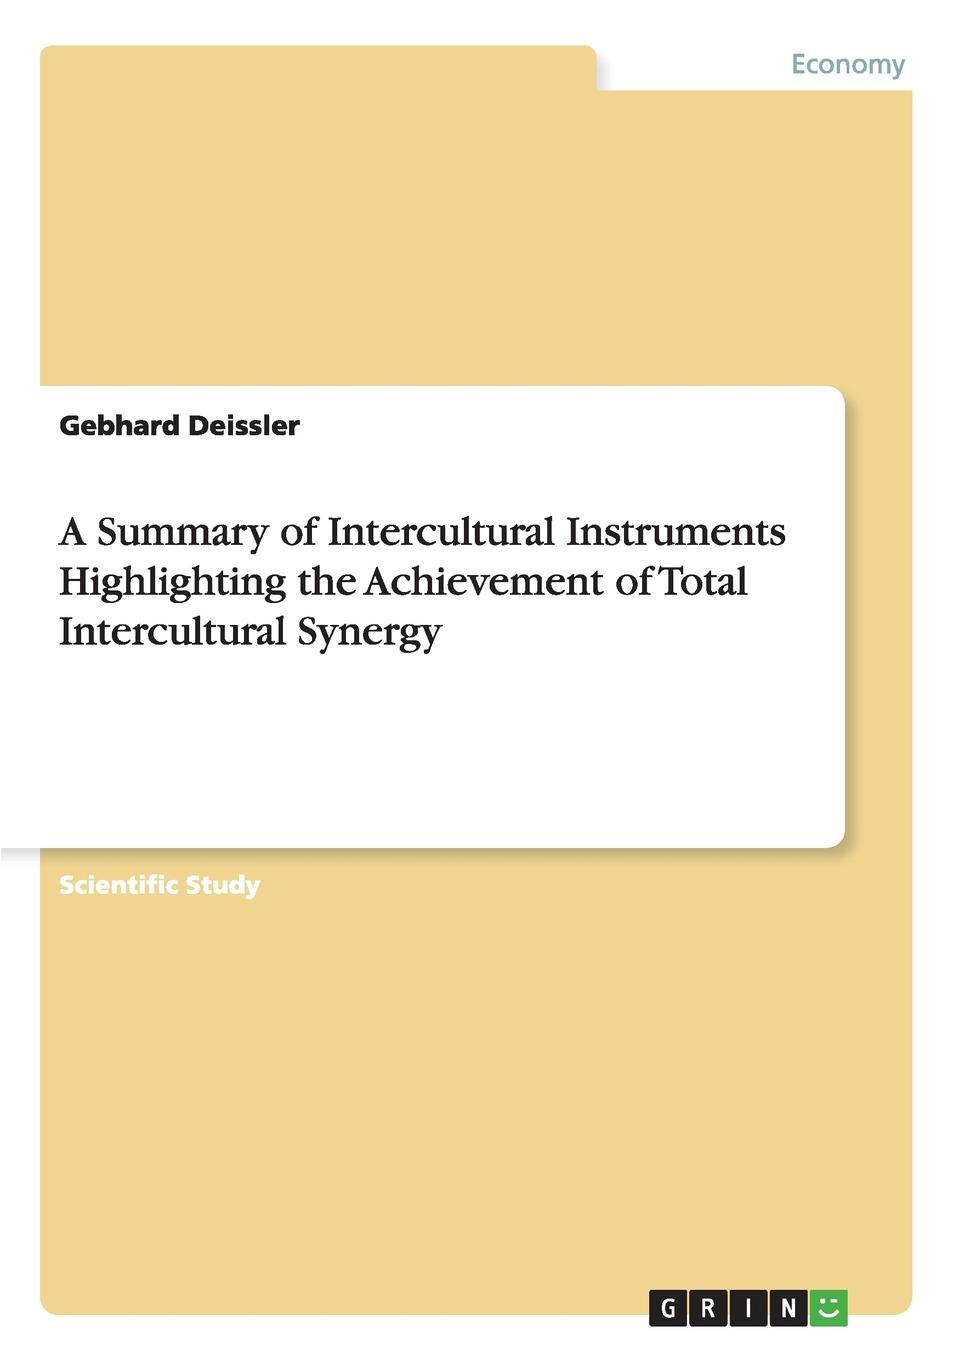 Gebhard Deissler A Summary of Intercultural Instruments Highlighting the Achievement of Total Intercultural Synergy the deming management method